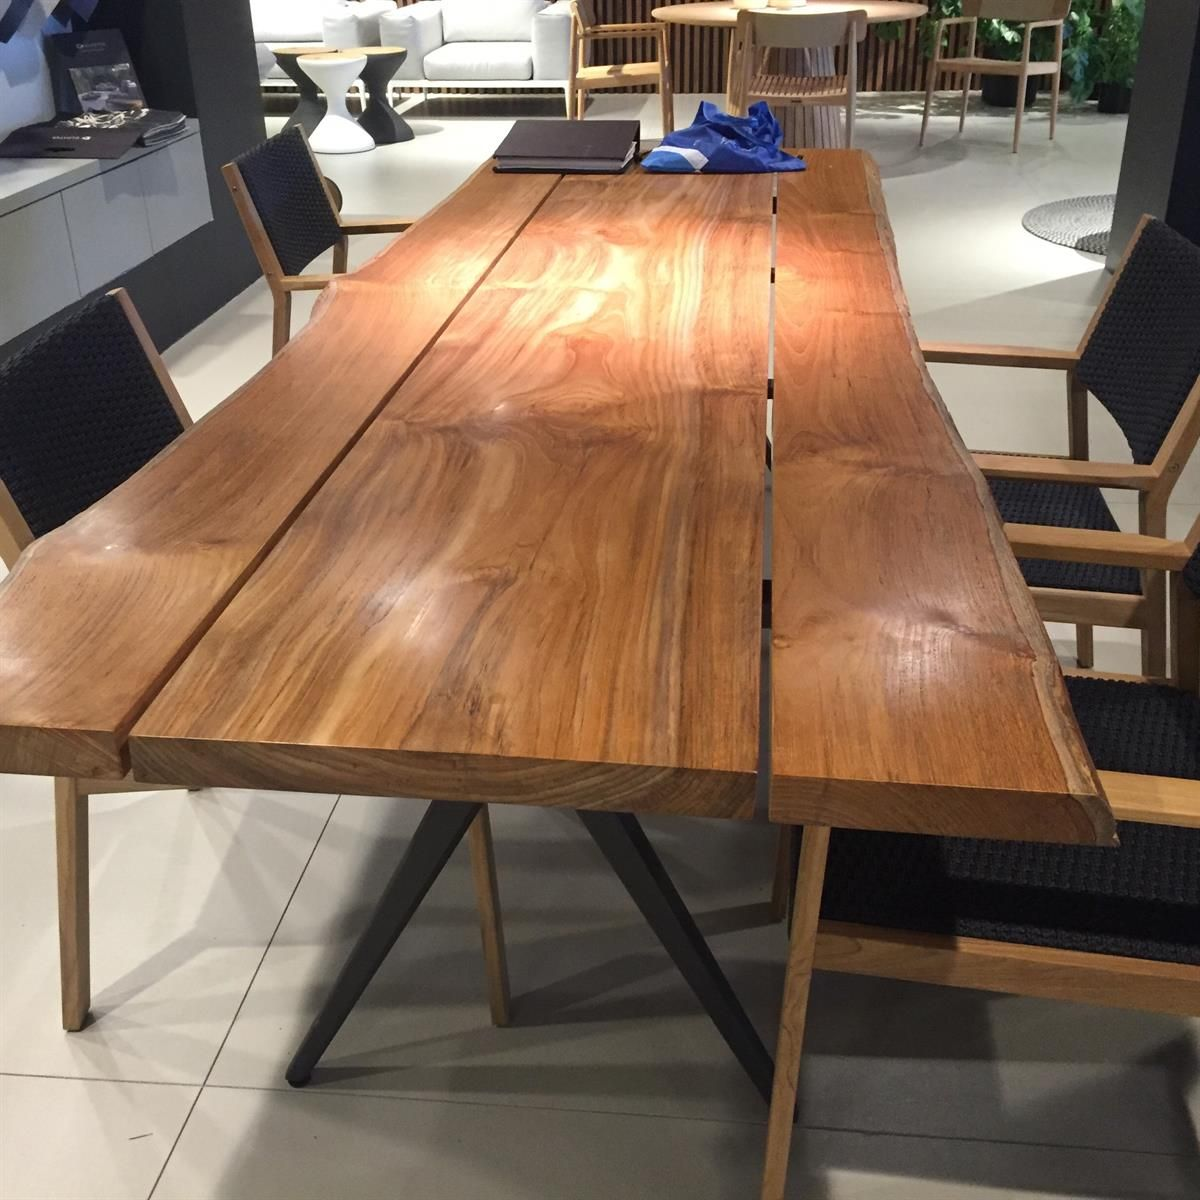 Exceptionnel Gloster Has Gone Over The Top With The NEW Split Raw Dining Table. Contact  Us For More Information